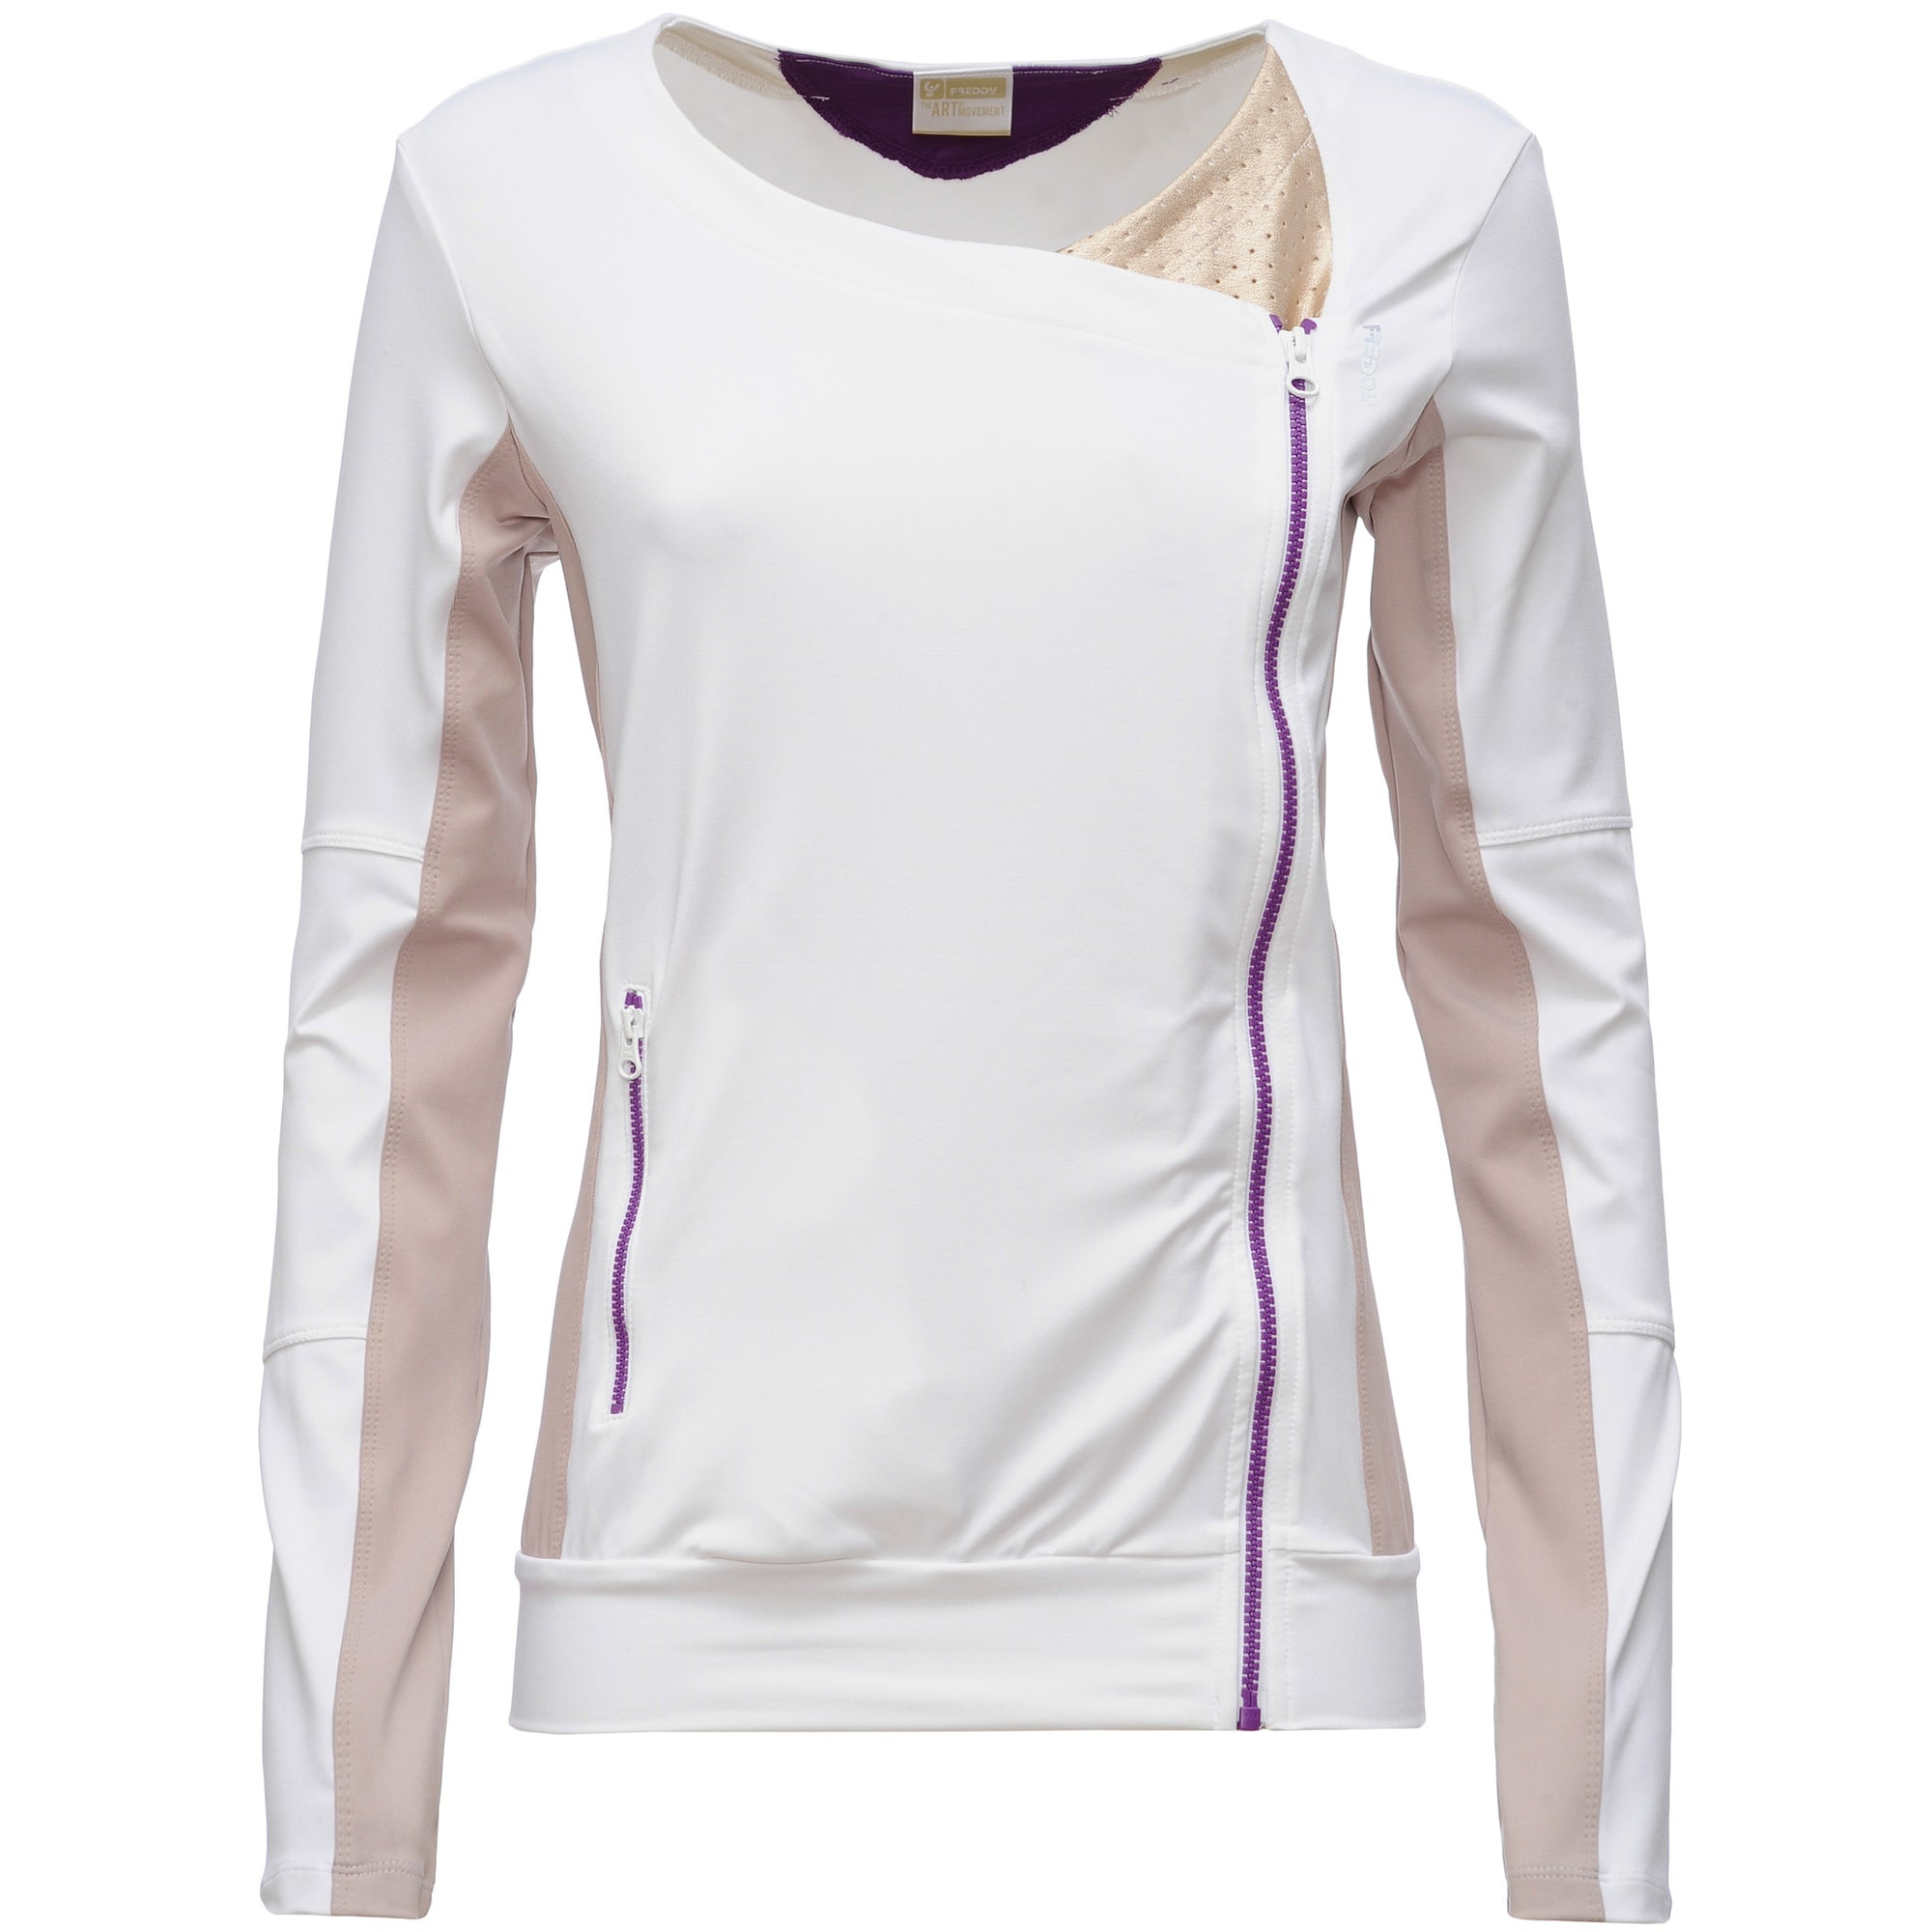 FREDDY WHITE ACTIVE ASYMMETRICAL ZIP SWEAT - WHITE - LIVIFY